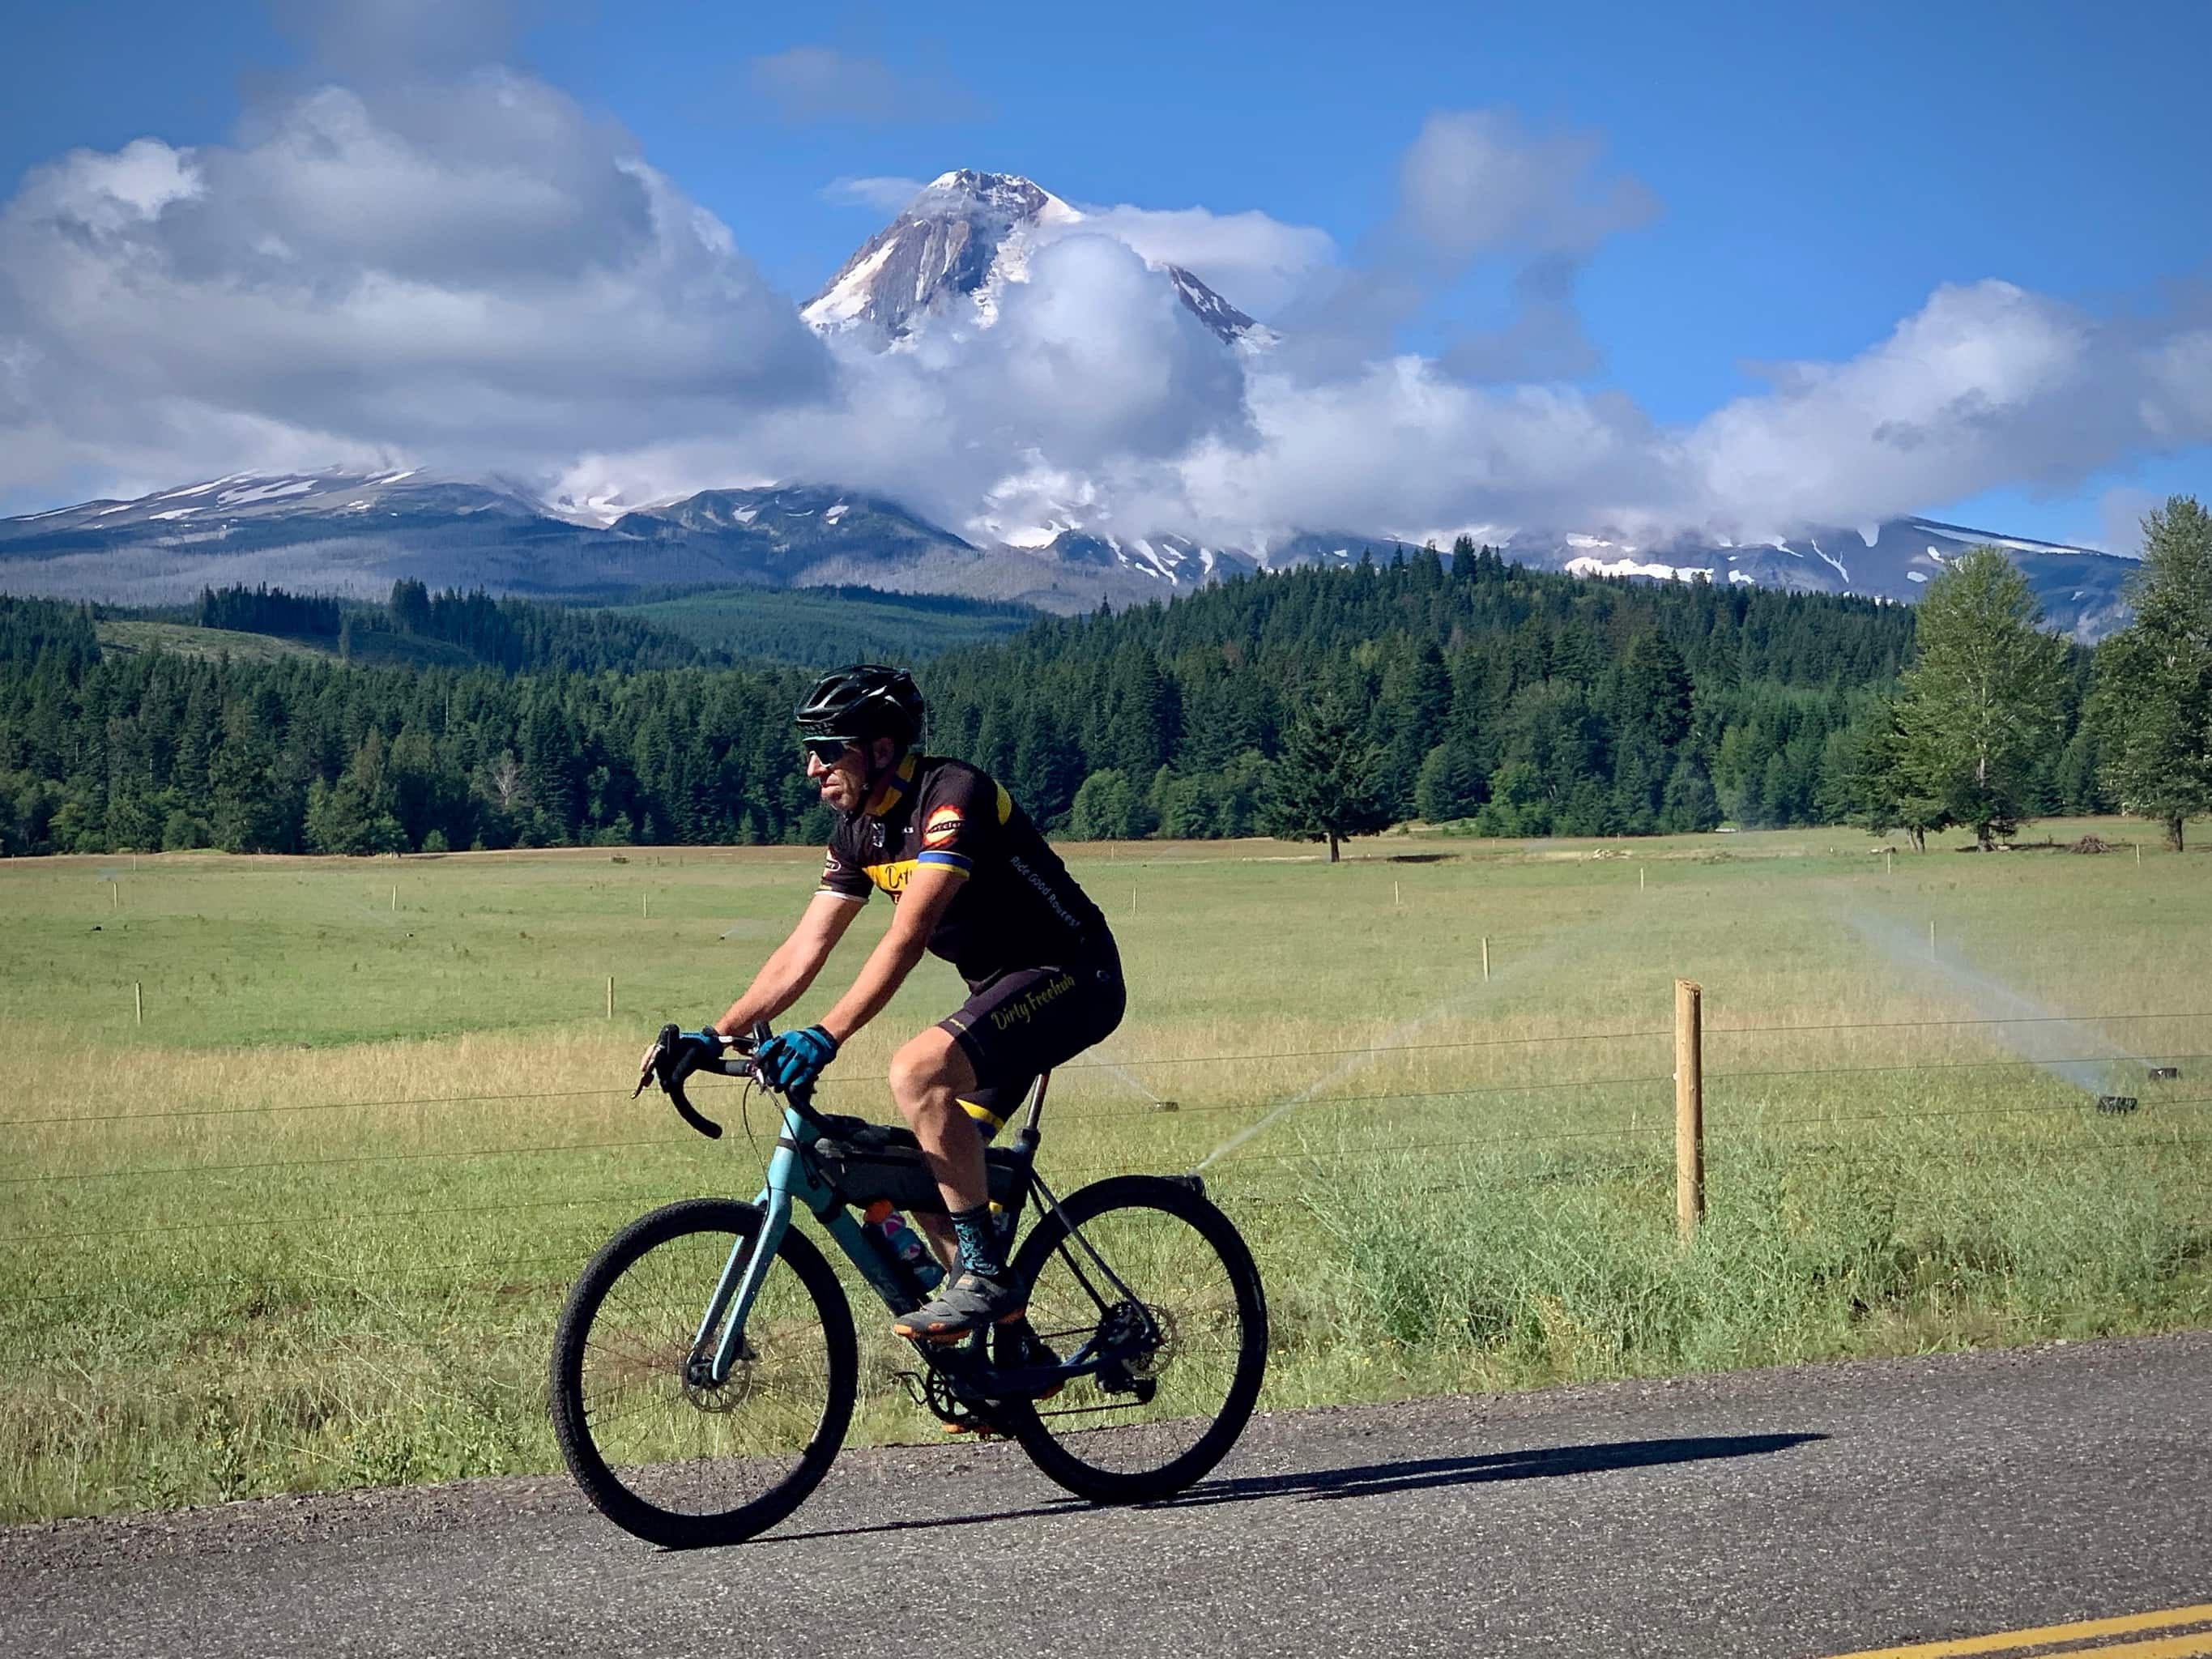 Cyclist on paved road with Mt. Hood in the background, near Parkdale, Oregon.